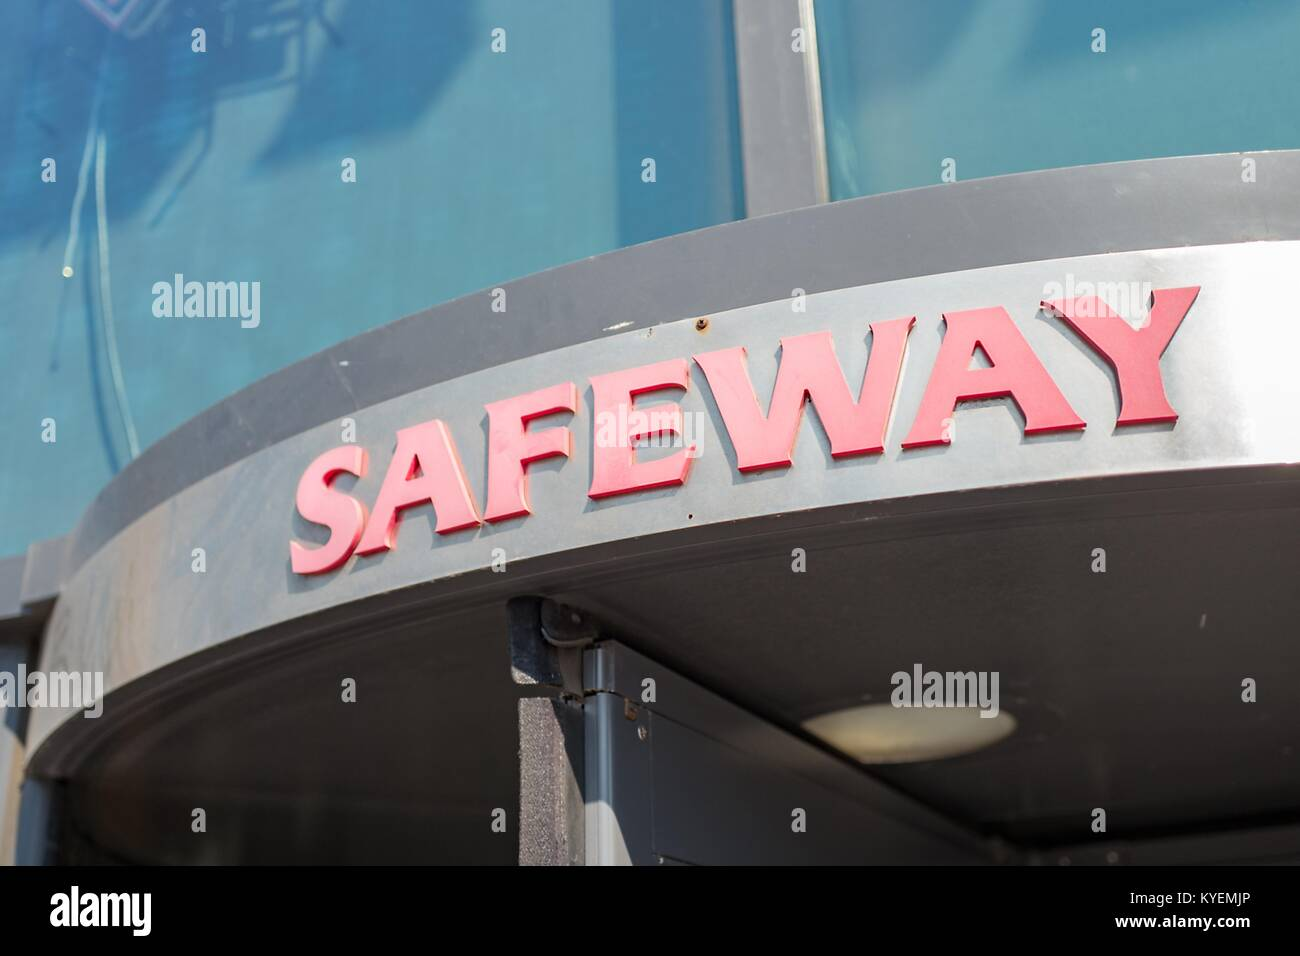 Safeway stock symbol image collections symbol and sign ideas safeway stock symbol choice image symbol and sign ideas the safeway supermarket sign stock photos the buycottarizona